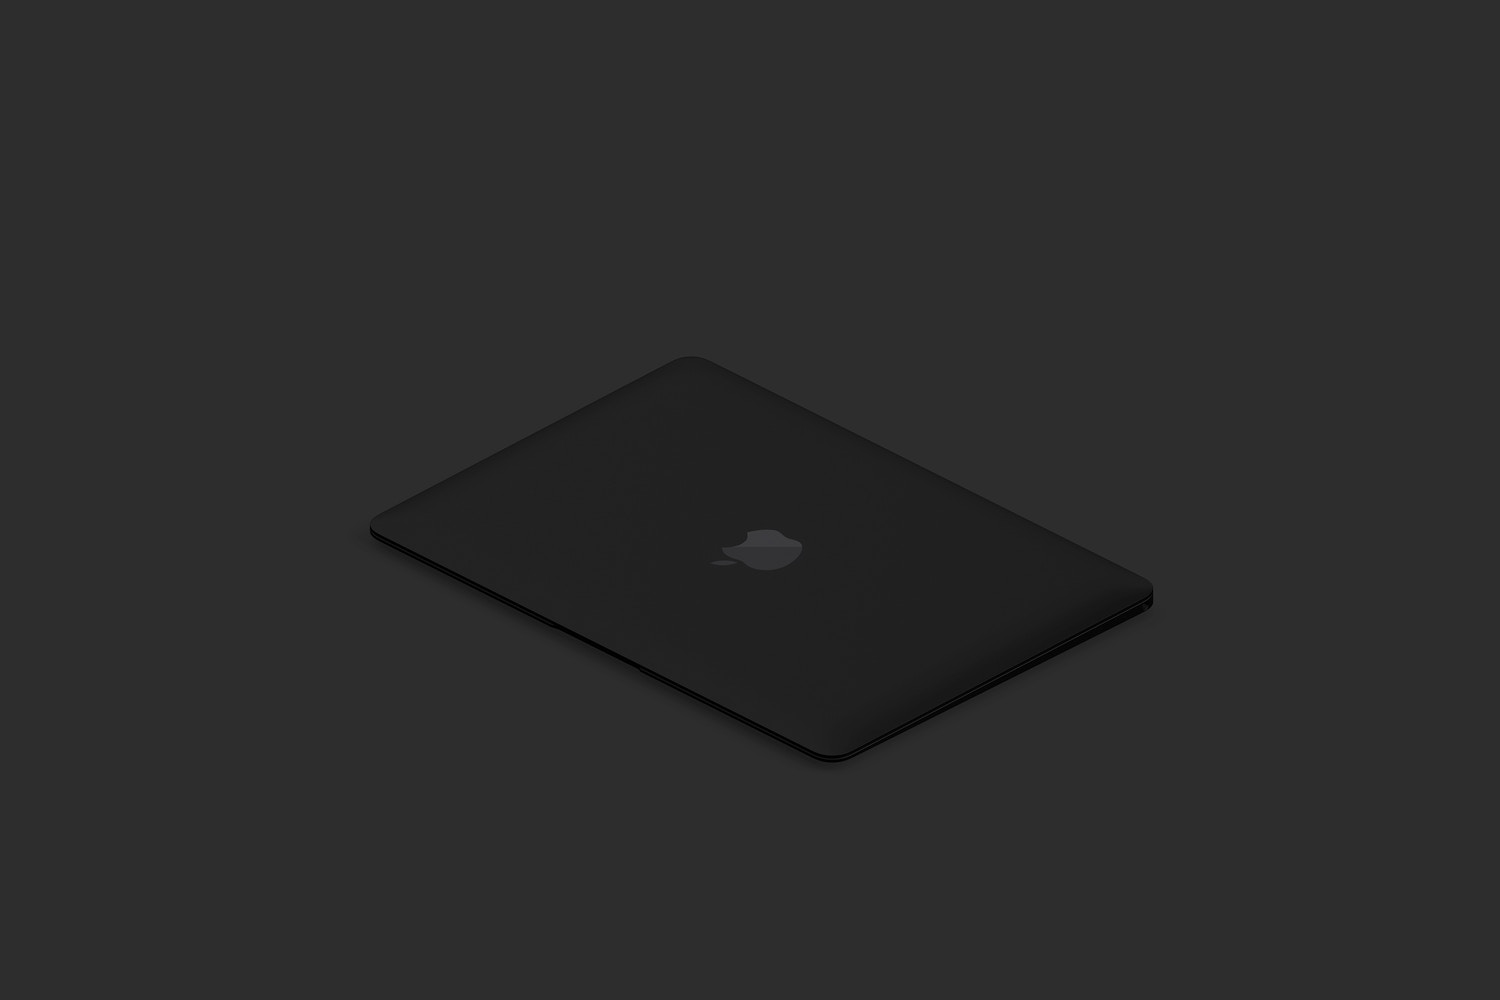 Clay MacBook Mockup, Isometric Left View 02 (5) by Original Mockups on Original Mockups